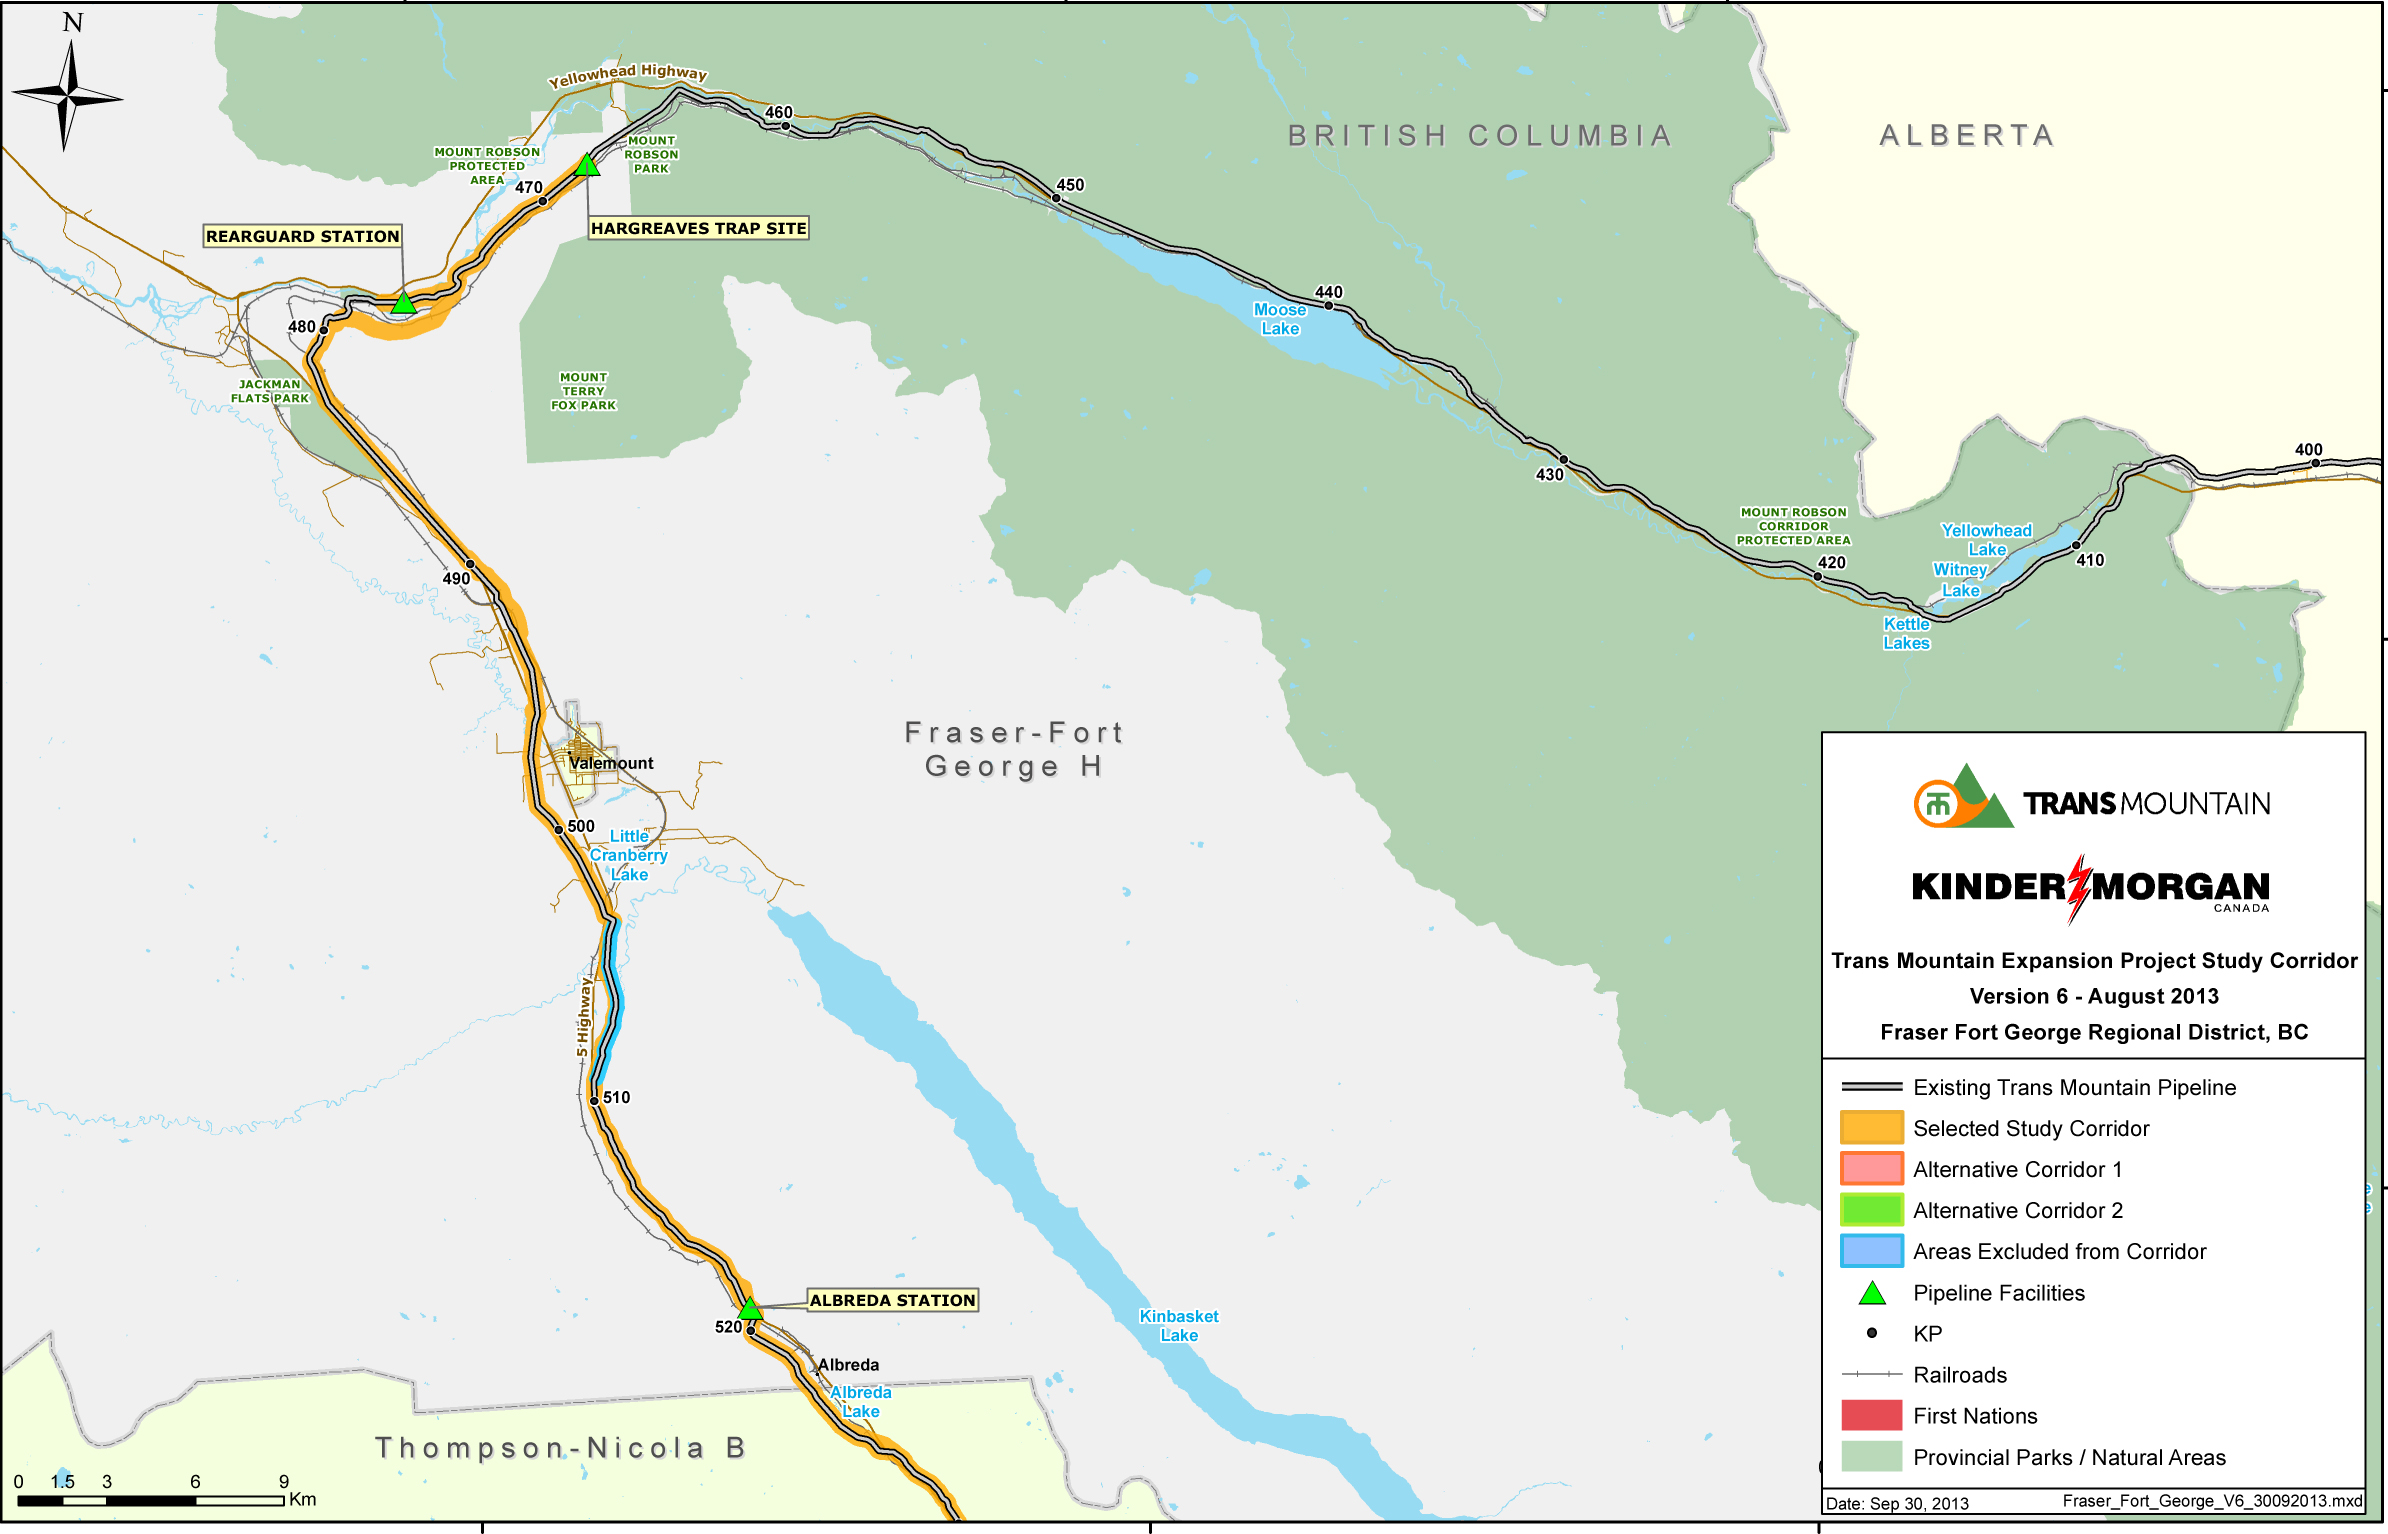 Kinder Morgan Trans Mountain Pipeline Map on keystone pipeline map, cochin pipeline map, seaway pipeline map, proposed pipeline map, express pipeline map, yellowstone pipeline map, puget sound pipeline map,